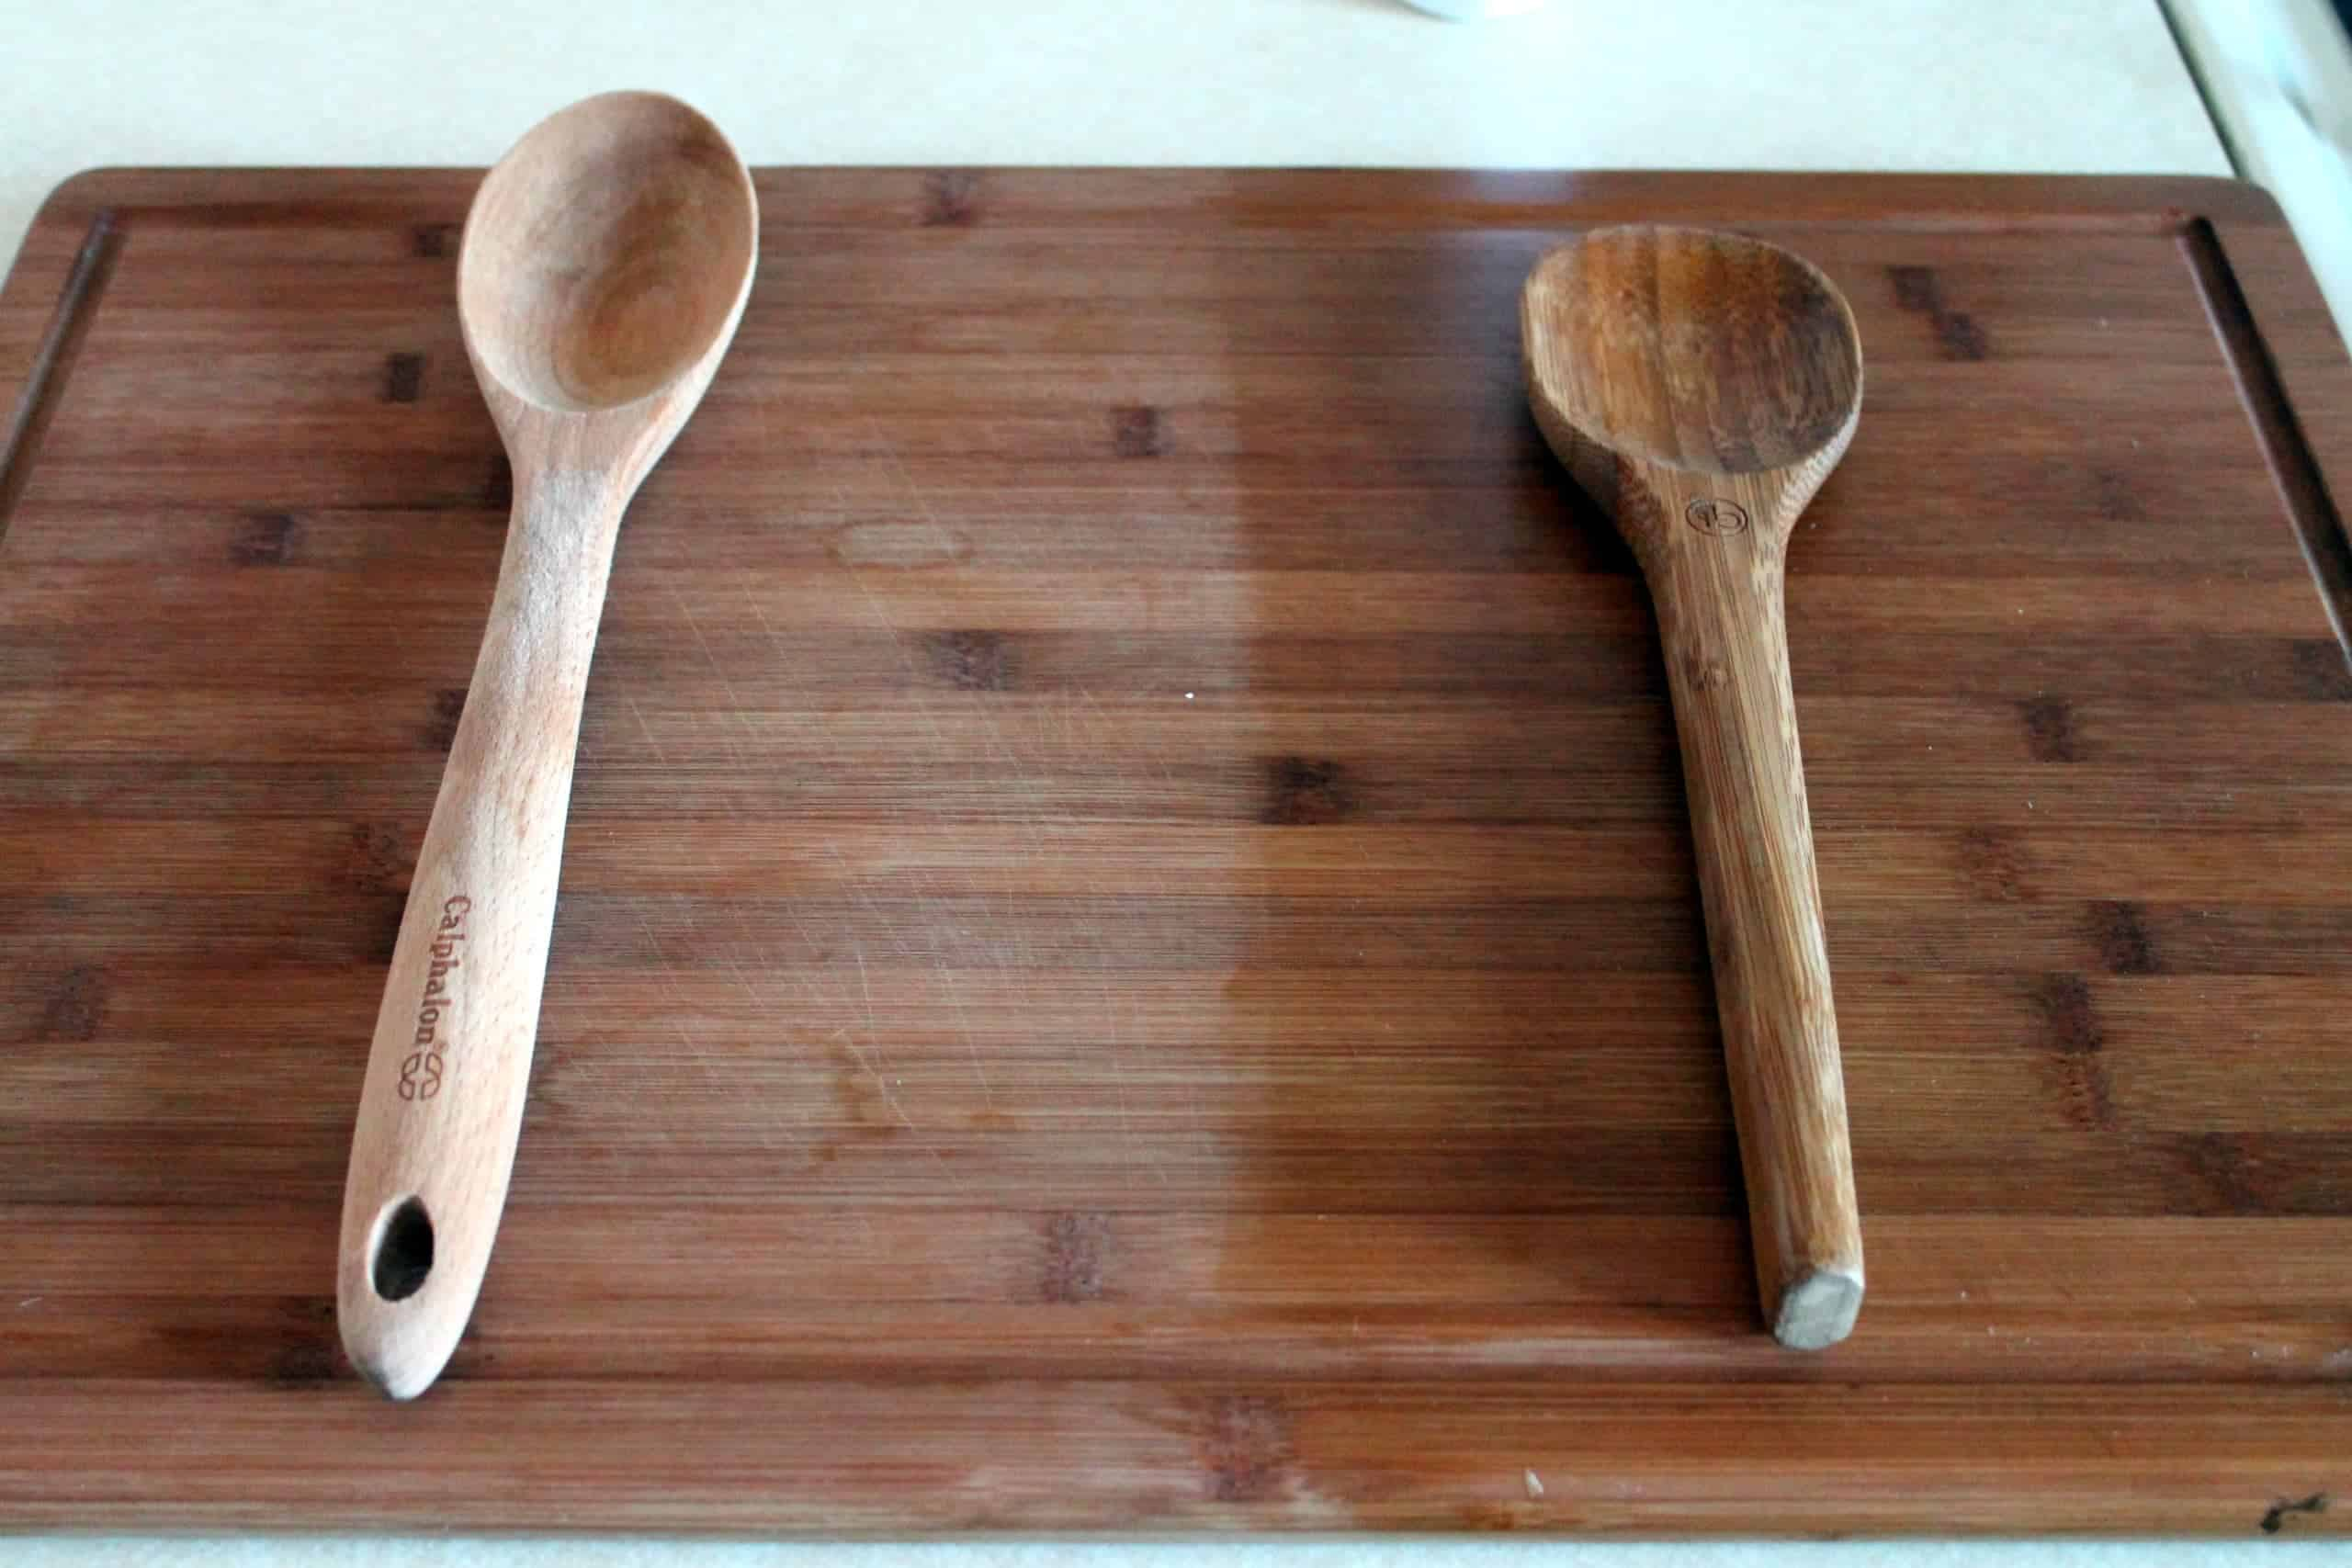 Oiling wooden utensils